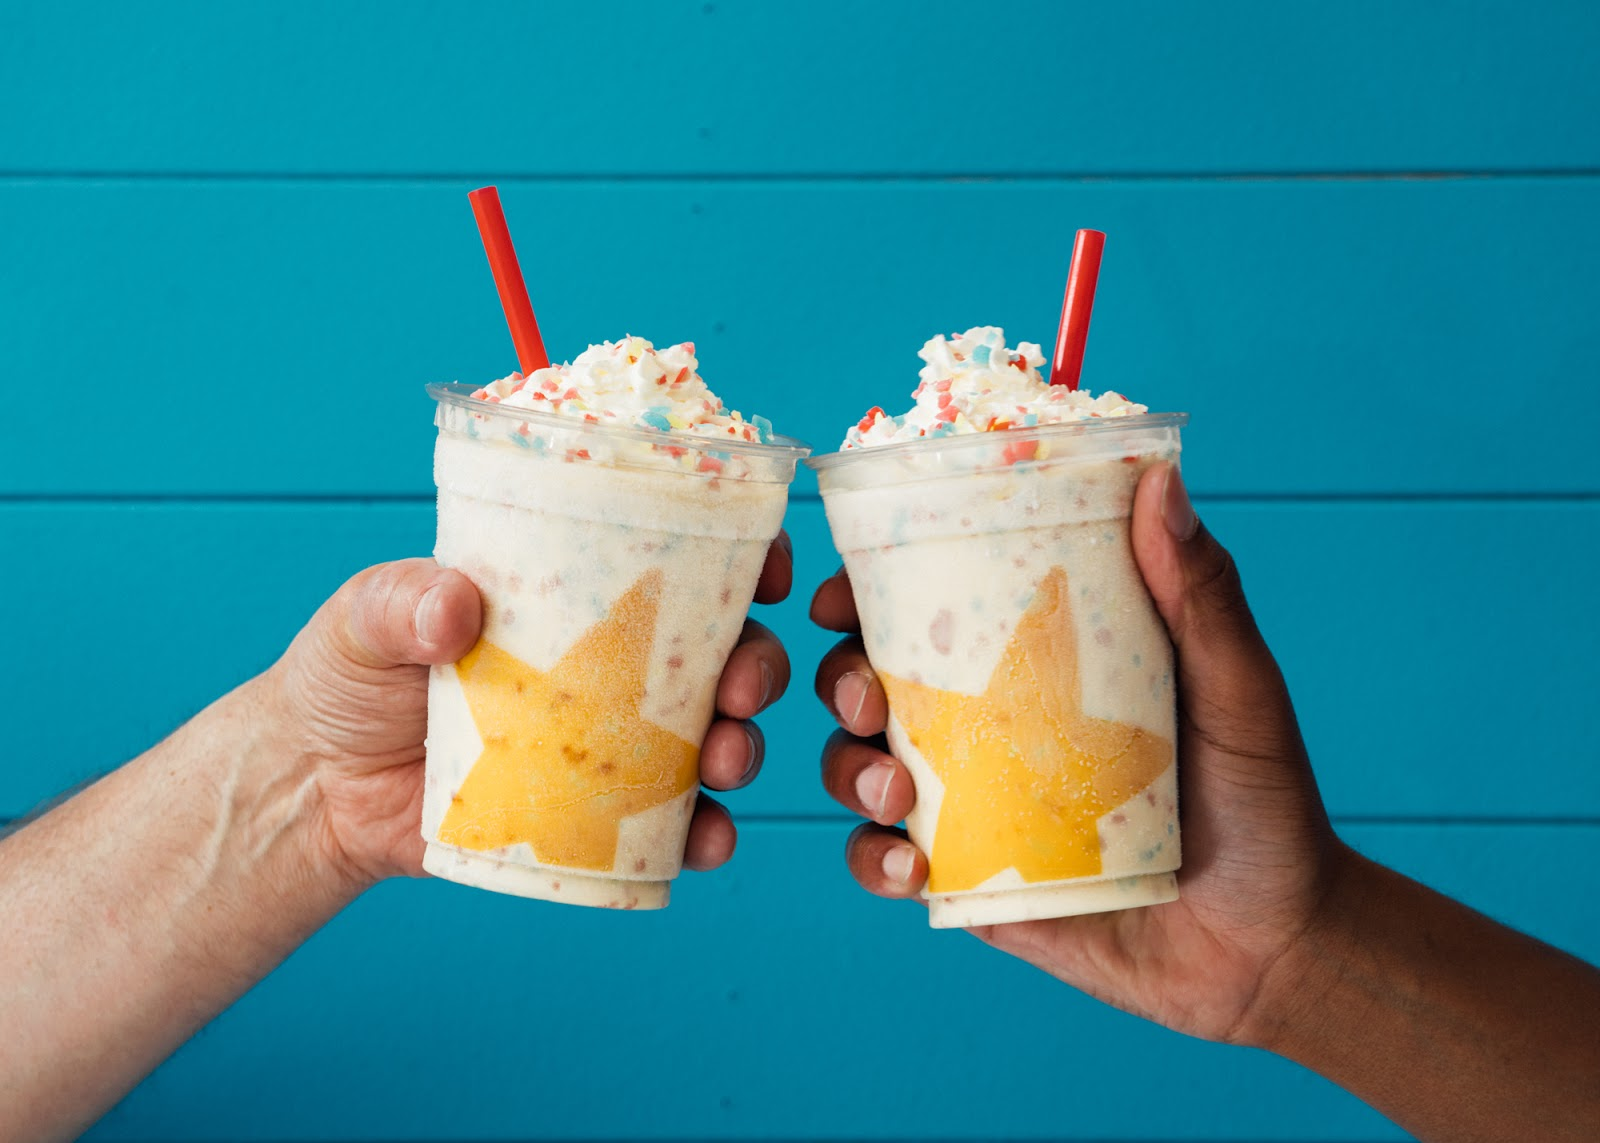 Cheers to summer and shakes and summers filled with shakes. -